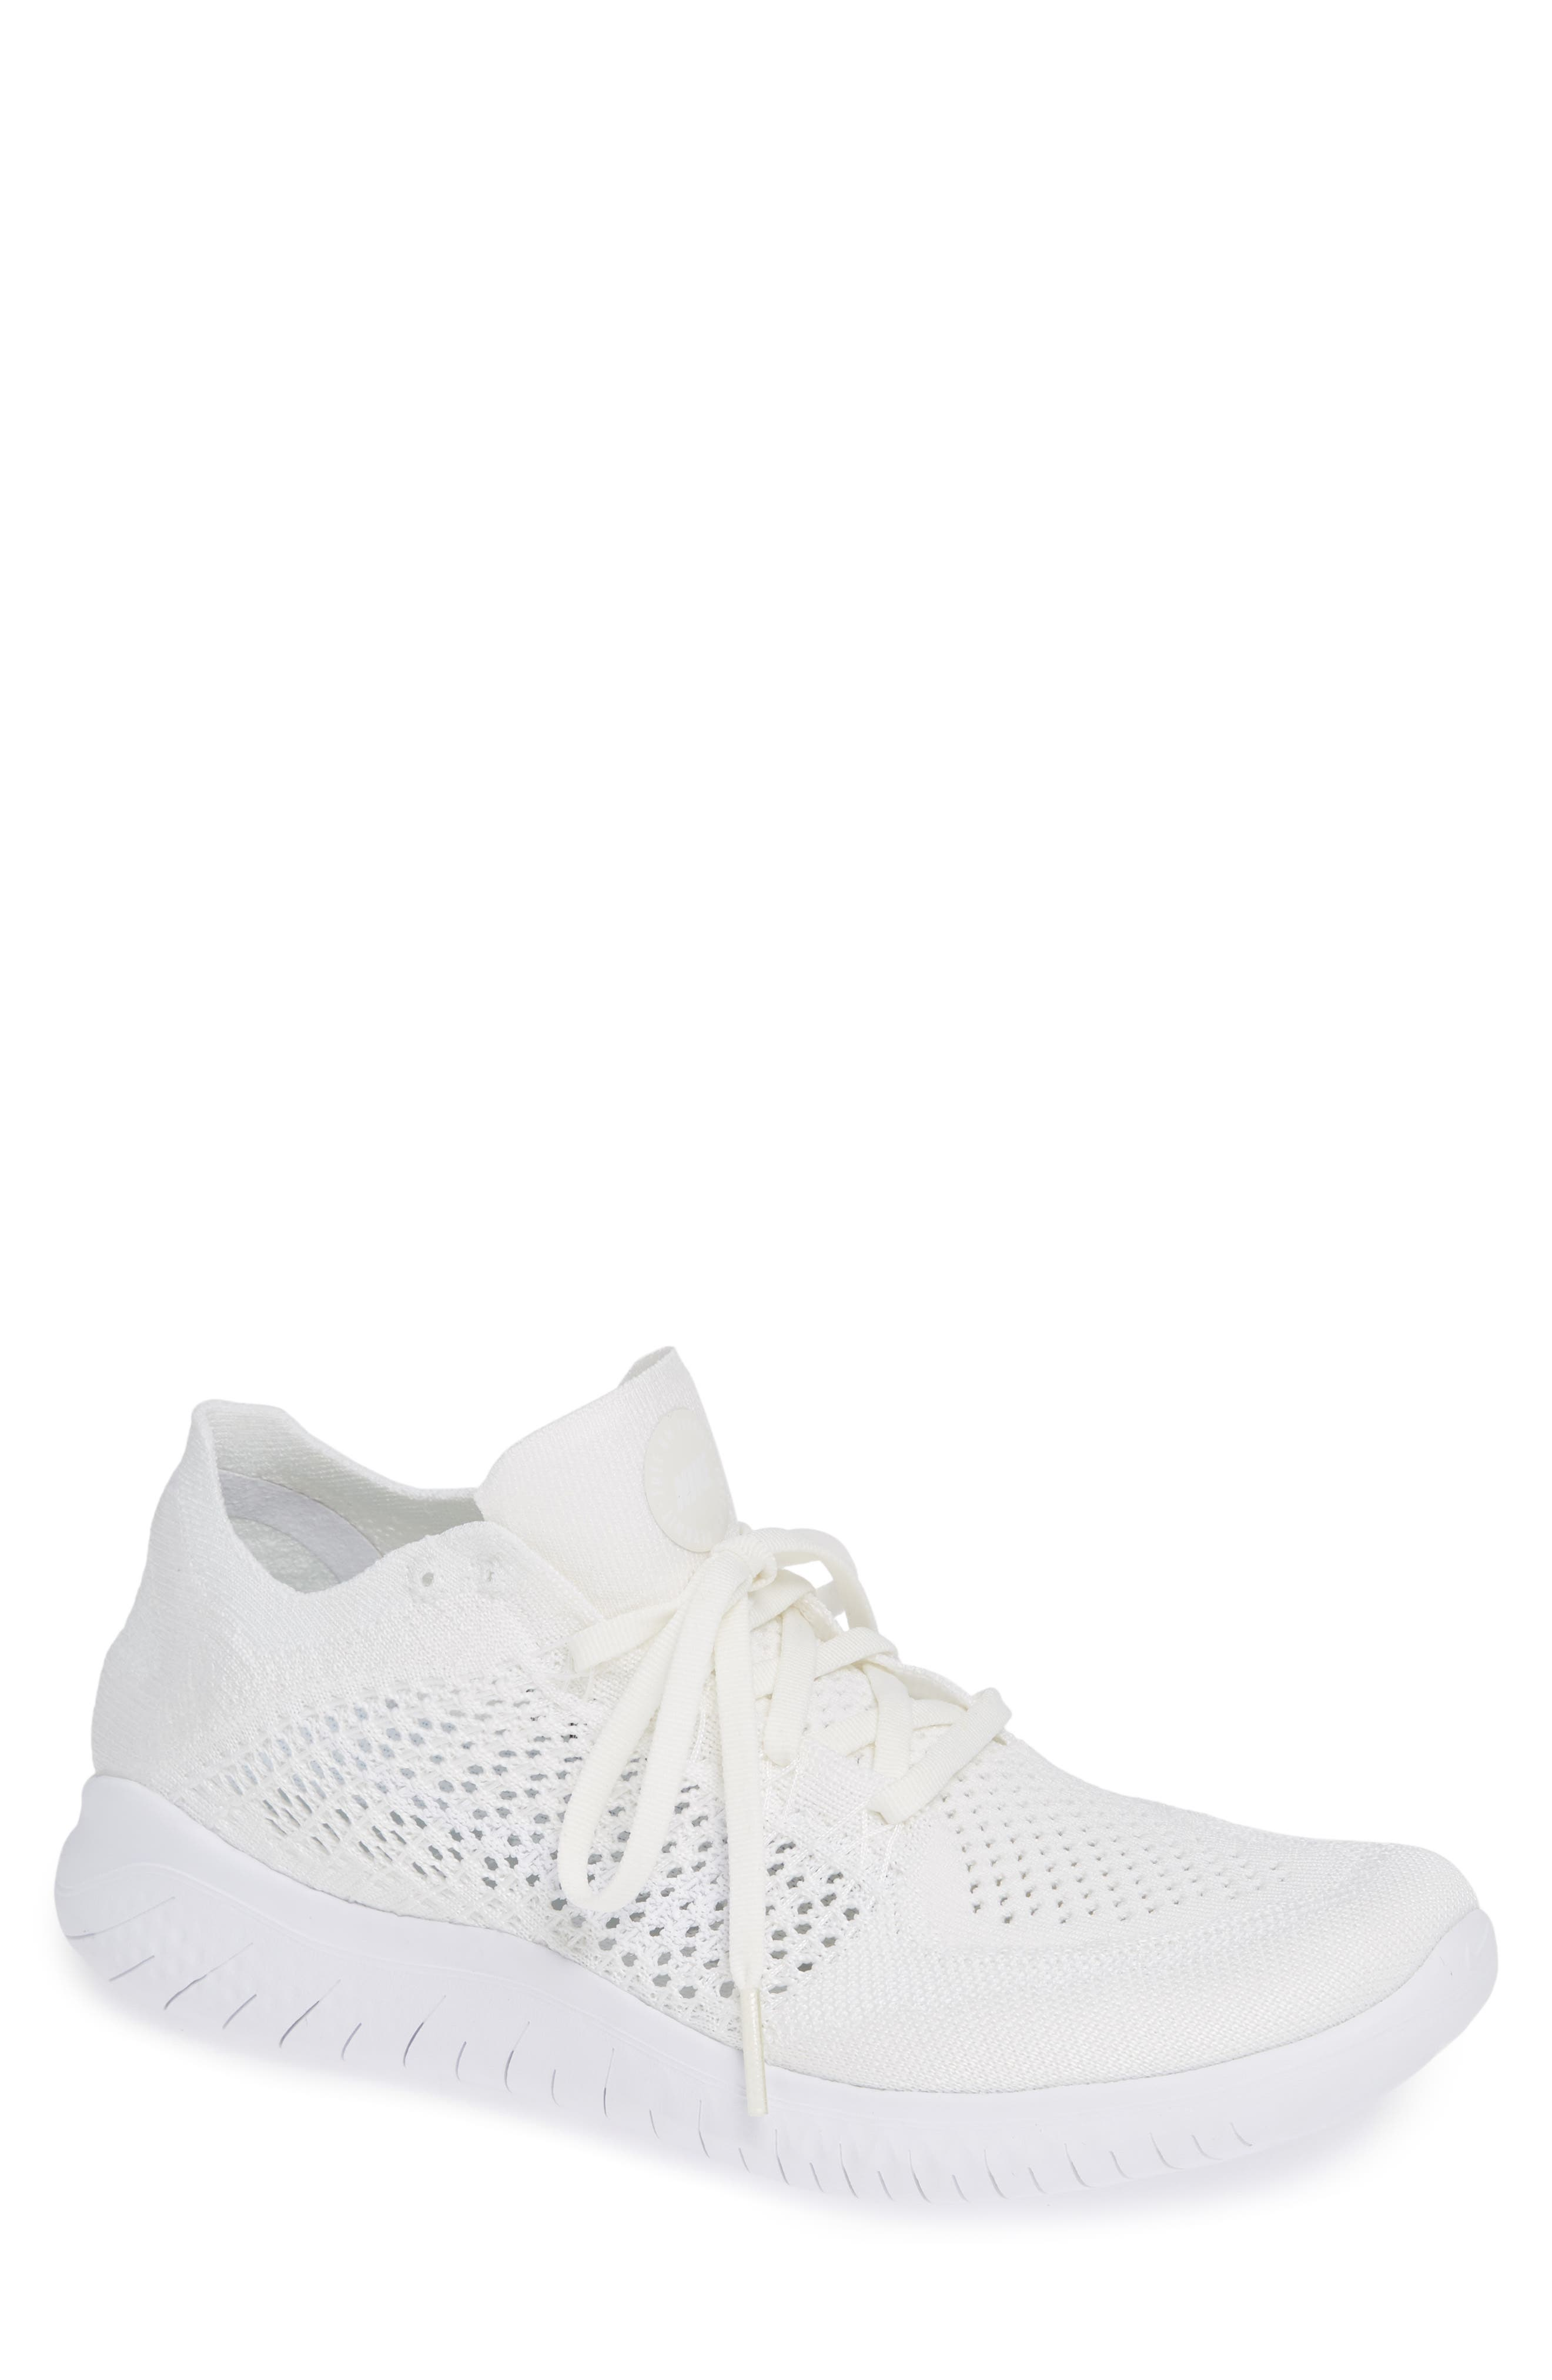 NIKE,                             Free RN Flyknit 2018 Running Shoe,                             Main thumbnail 1, color,                             WHITE/ WHITE